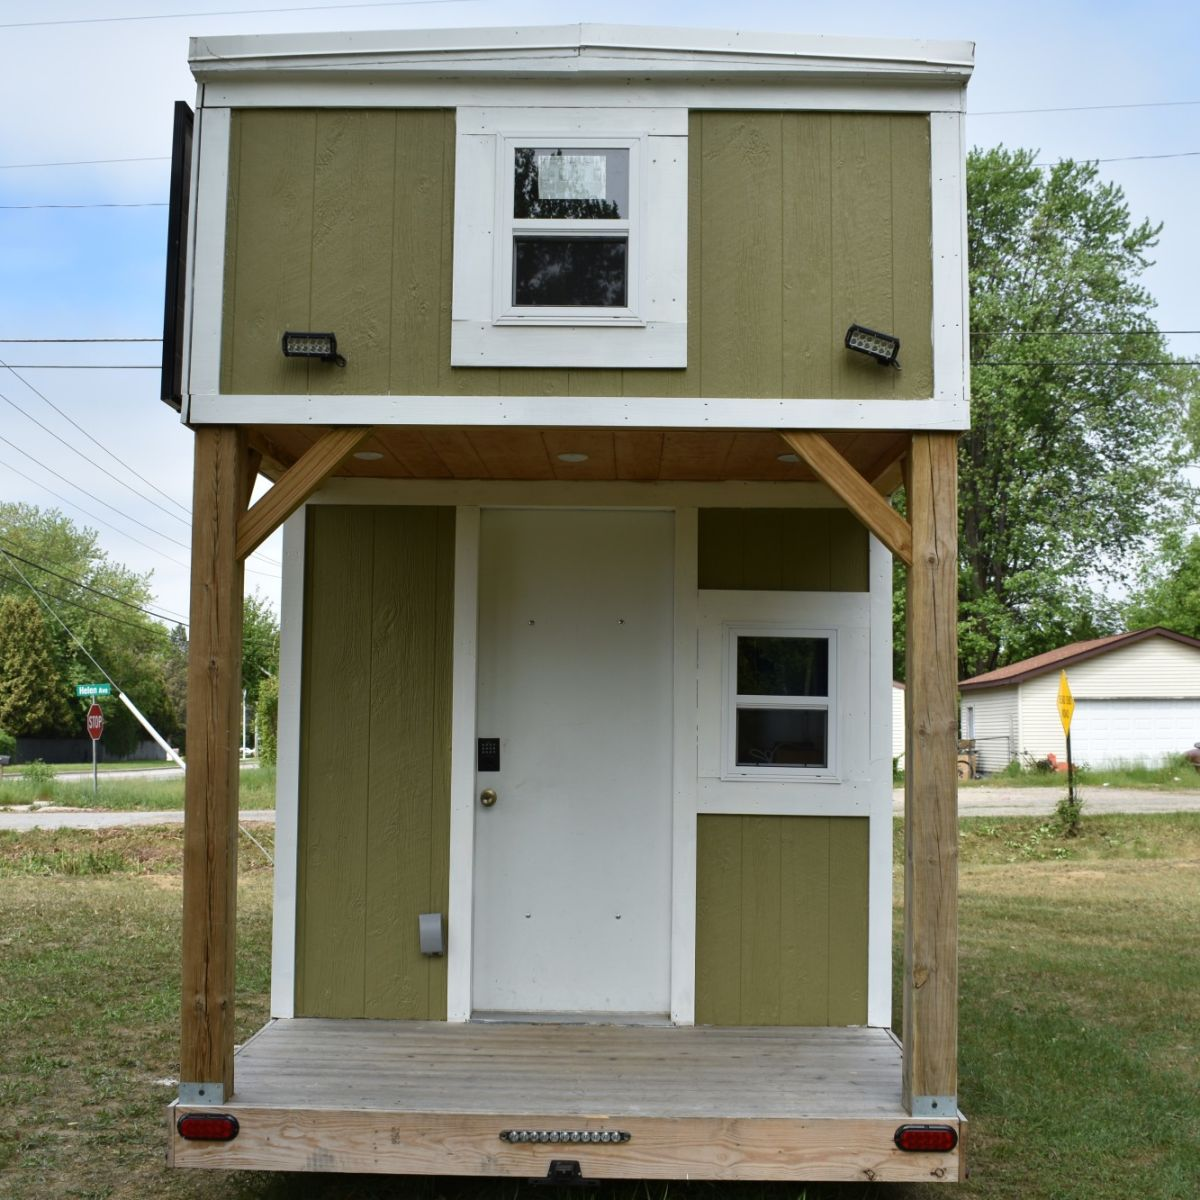 New Off Grid Tiny Home With Solar Panels And Batteries